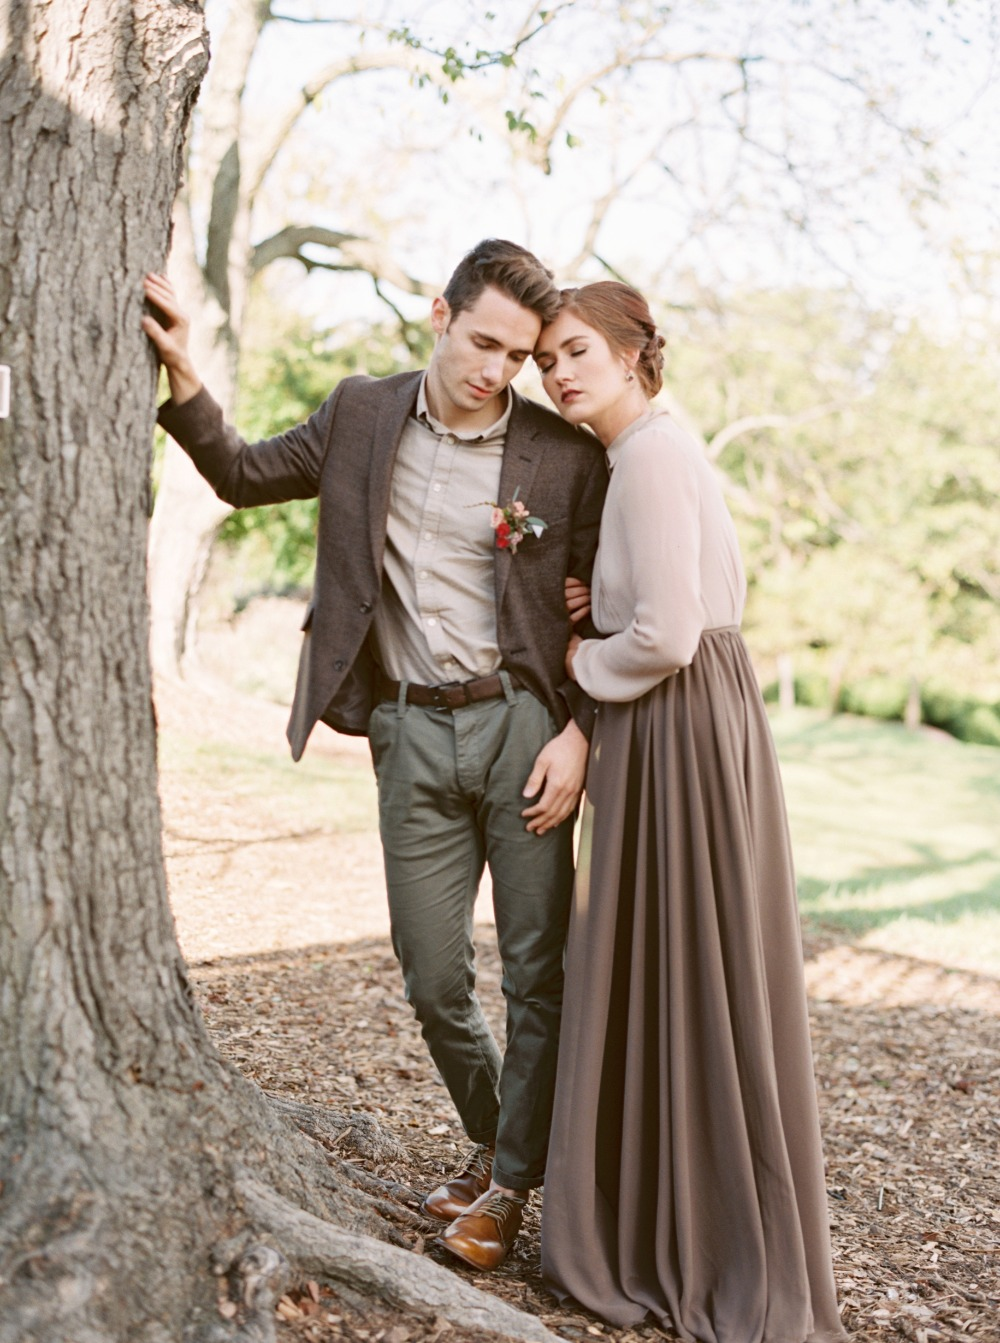 Fall wedding inspo